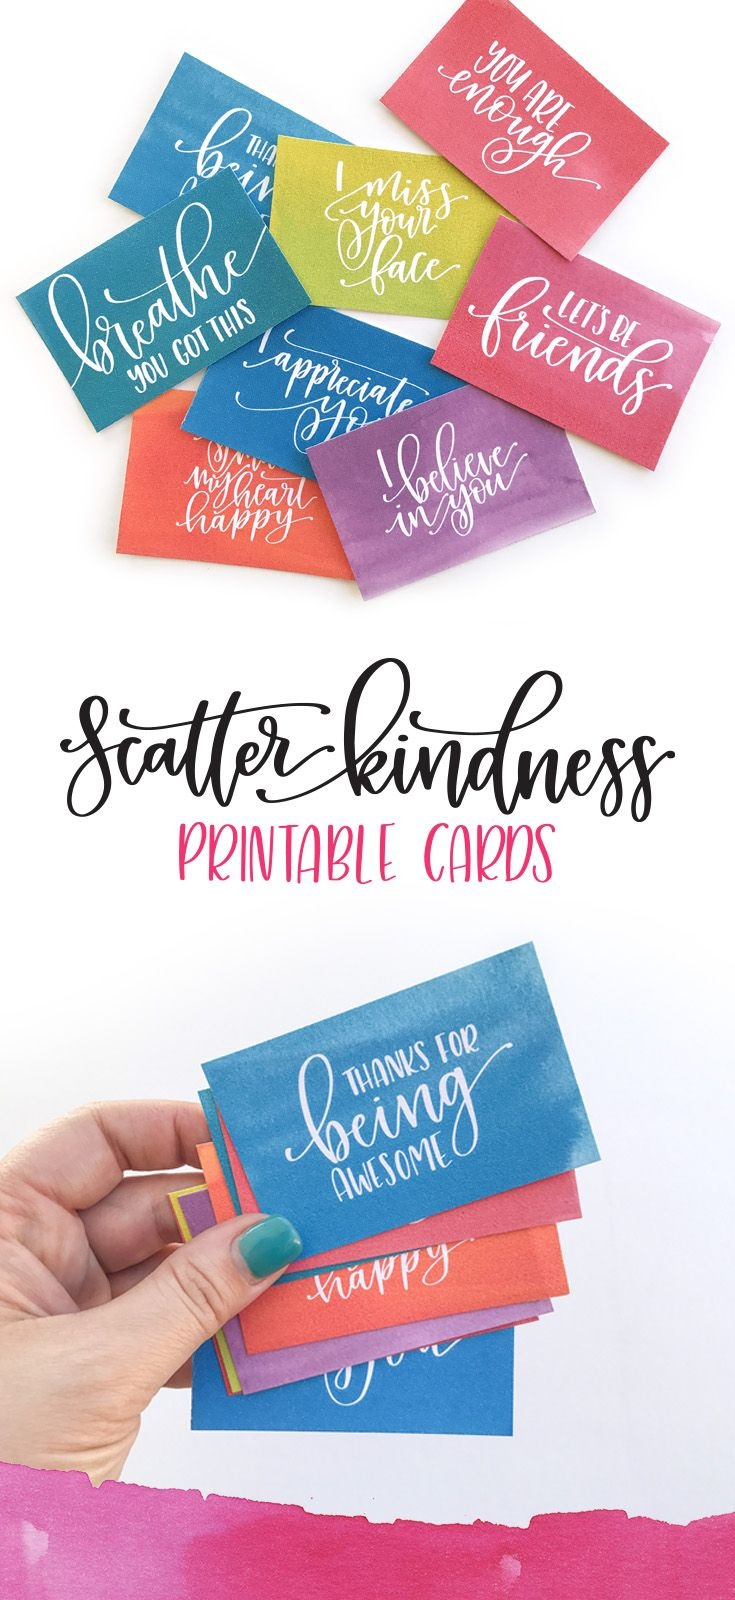 Scatter Kindness : Free Printable   Pretty Printables   Kindness - Free Printable Kindness Cards